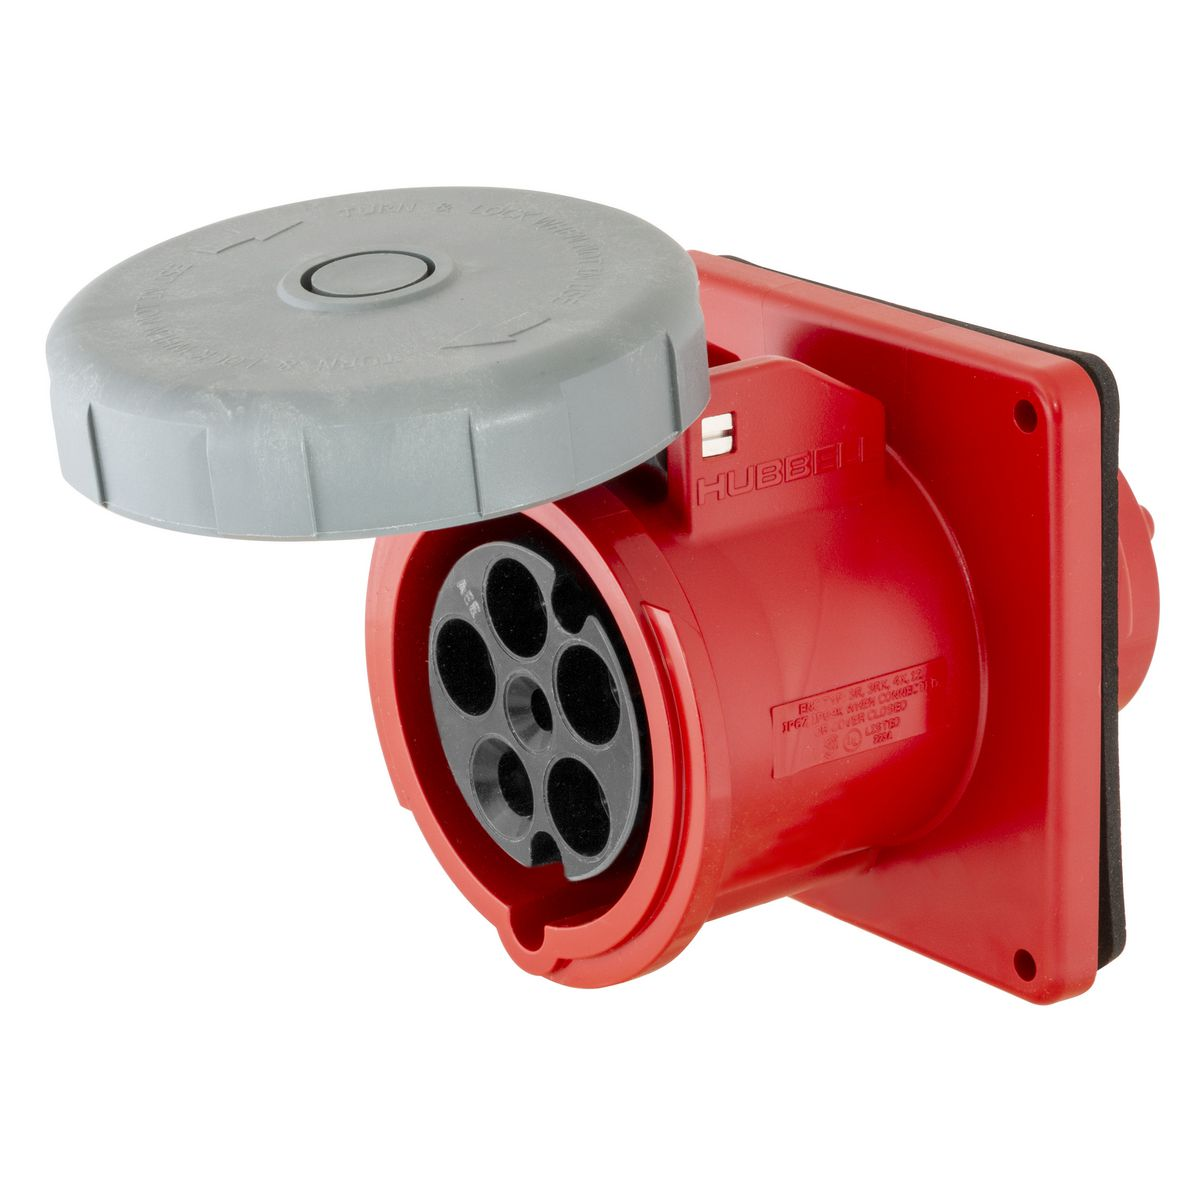 Hubbell HBL5100R7W 100 Amp 277/480 Volt 4-Pole 5-Wire Red IEC Pin and Sleeve Receptacle